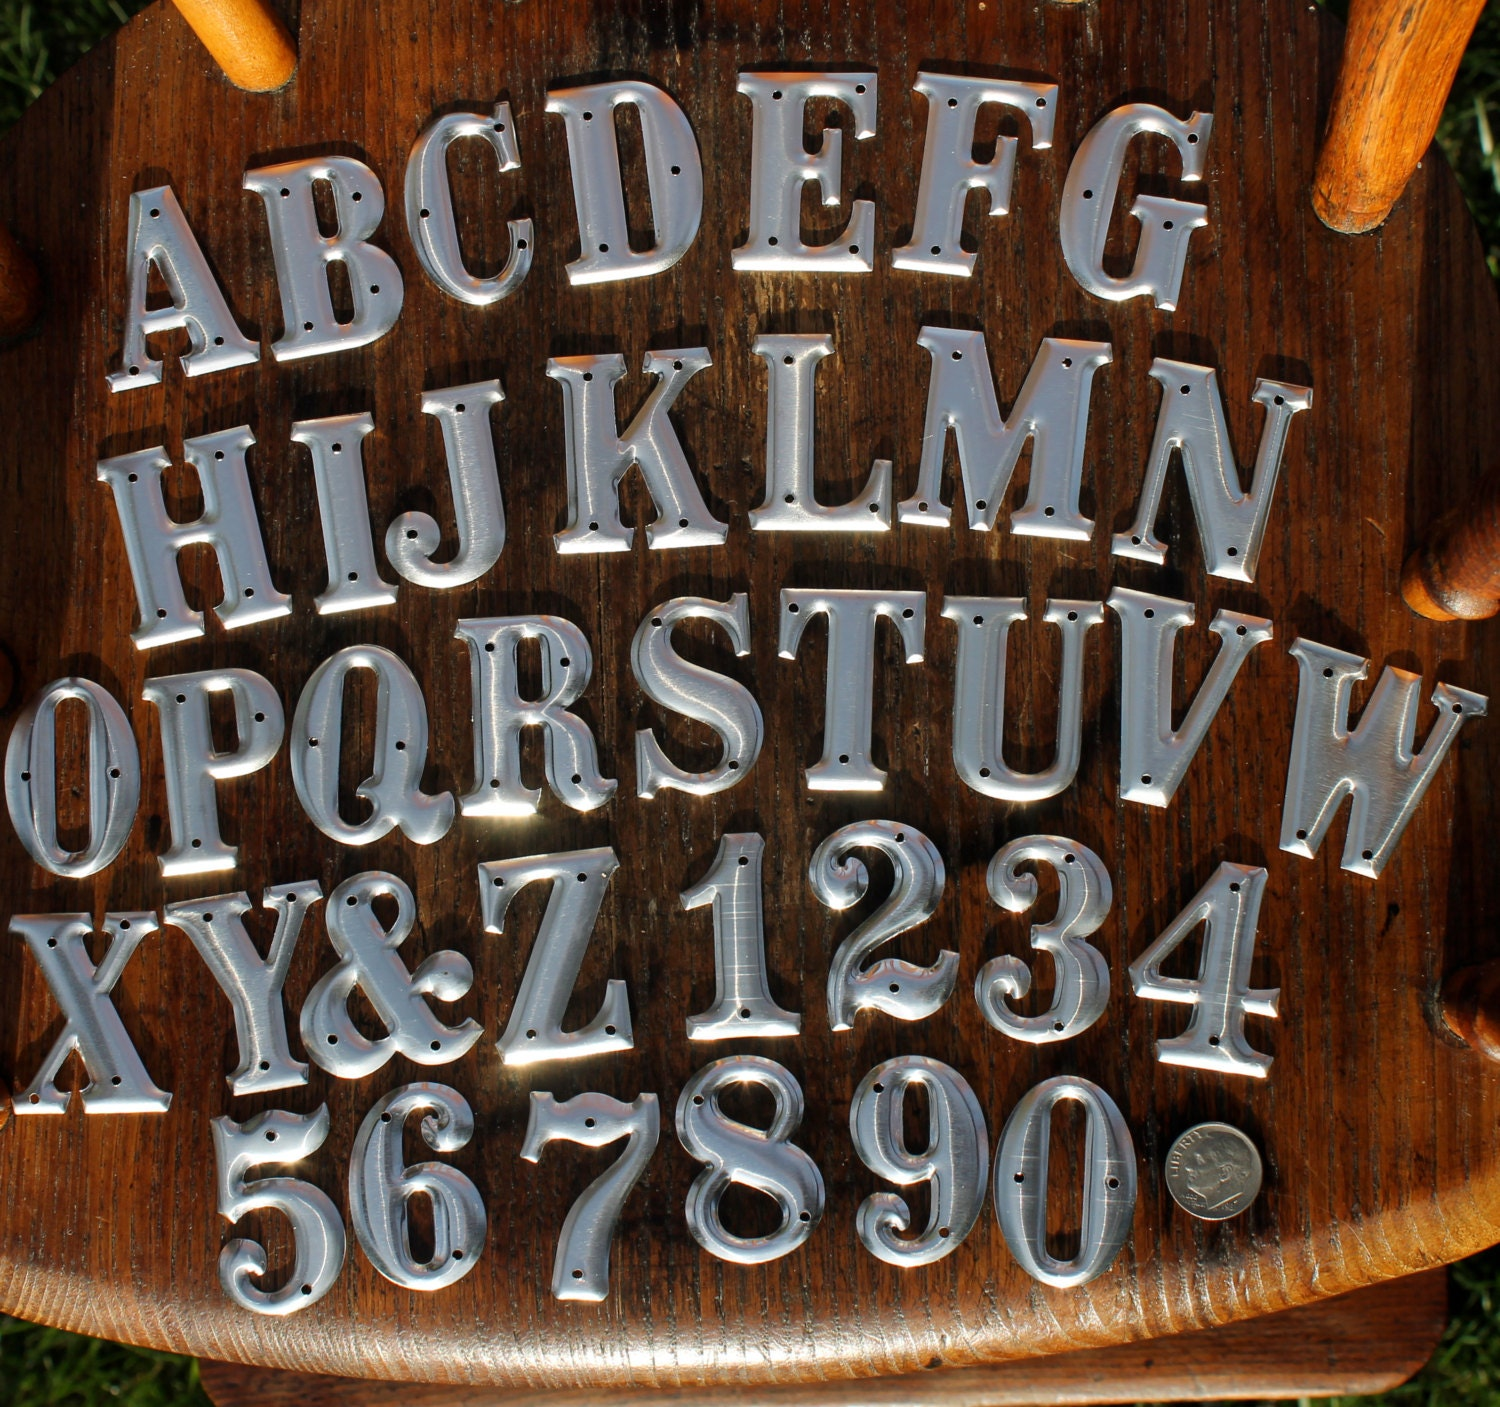 15 inch metal letters and numbers one and one half by With 5 inch metal letters